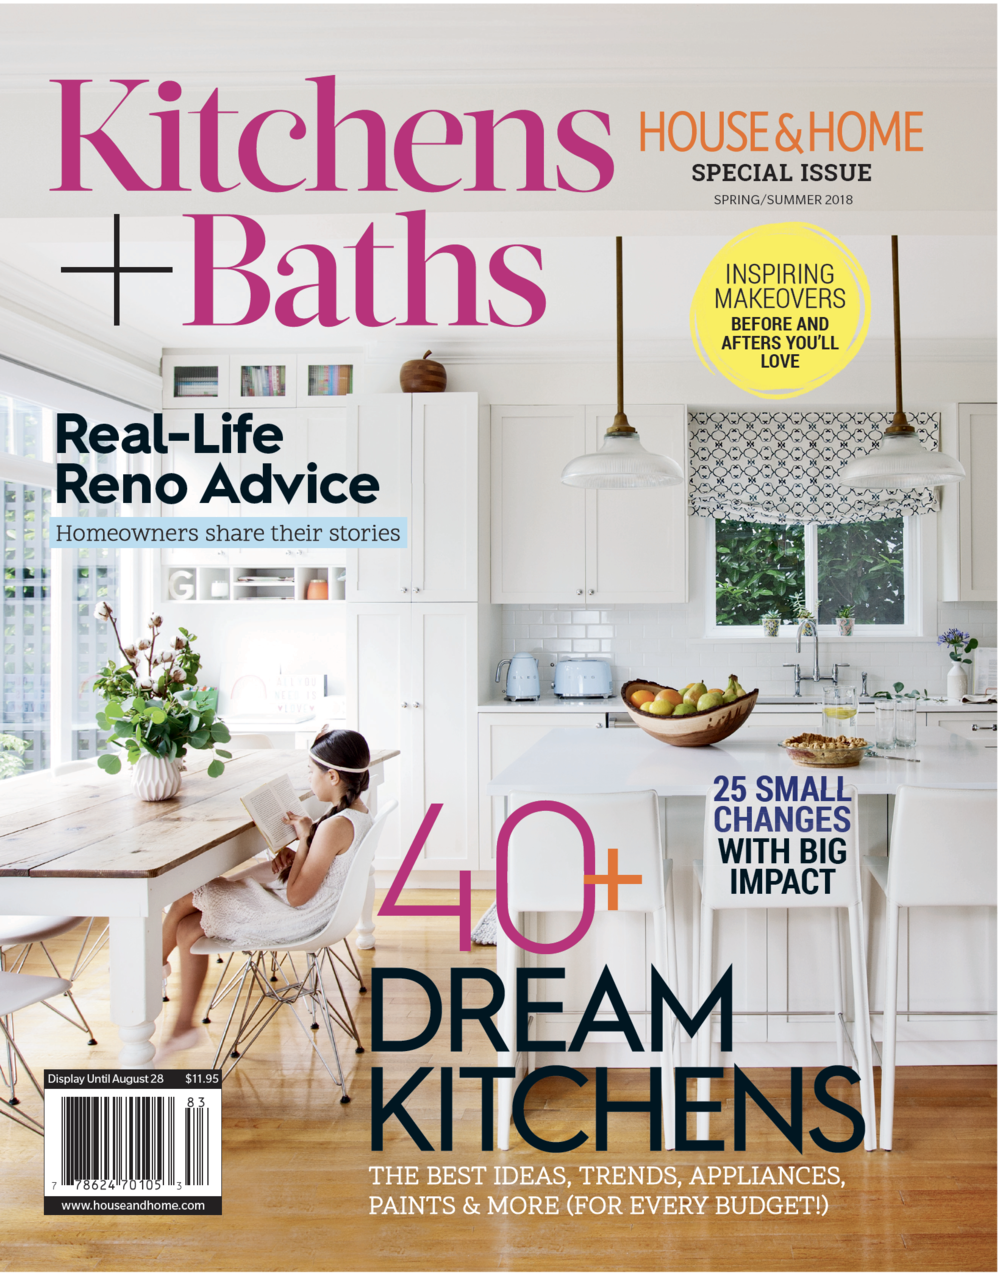 Kitchen & Bath Special IssueSpring/Summer 2018 - FRESH STARTby Emily EvansA designer for stars like The Handmaid's Tale's Samira Wiley, Stefani Stein shares advice for creating kitchens and bathrooms that are trendy yet timeless.